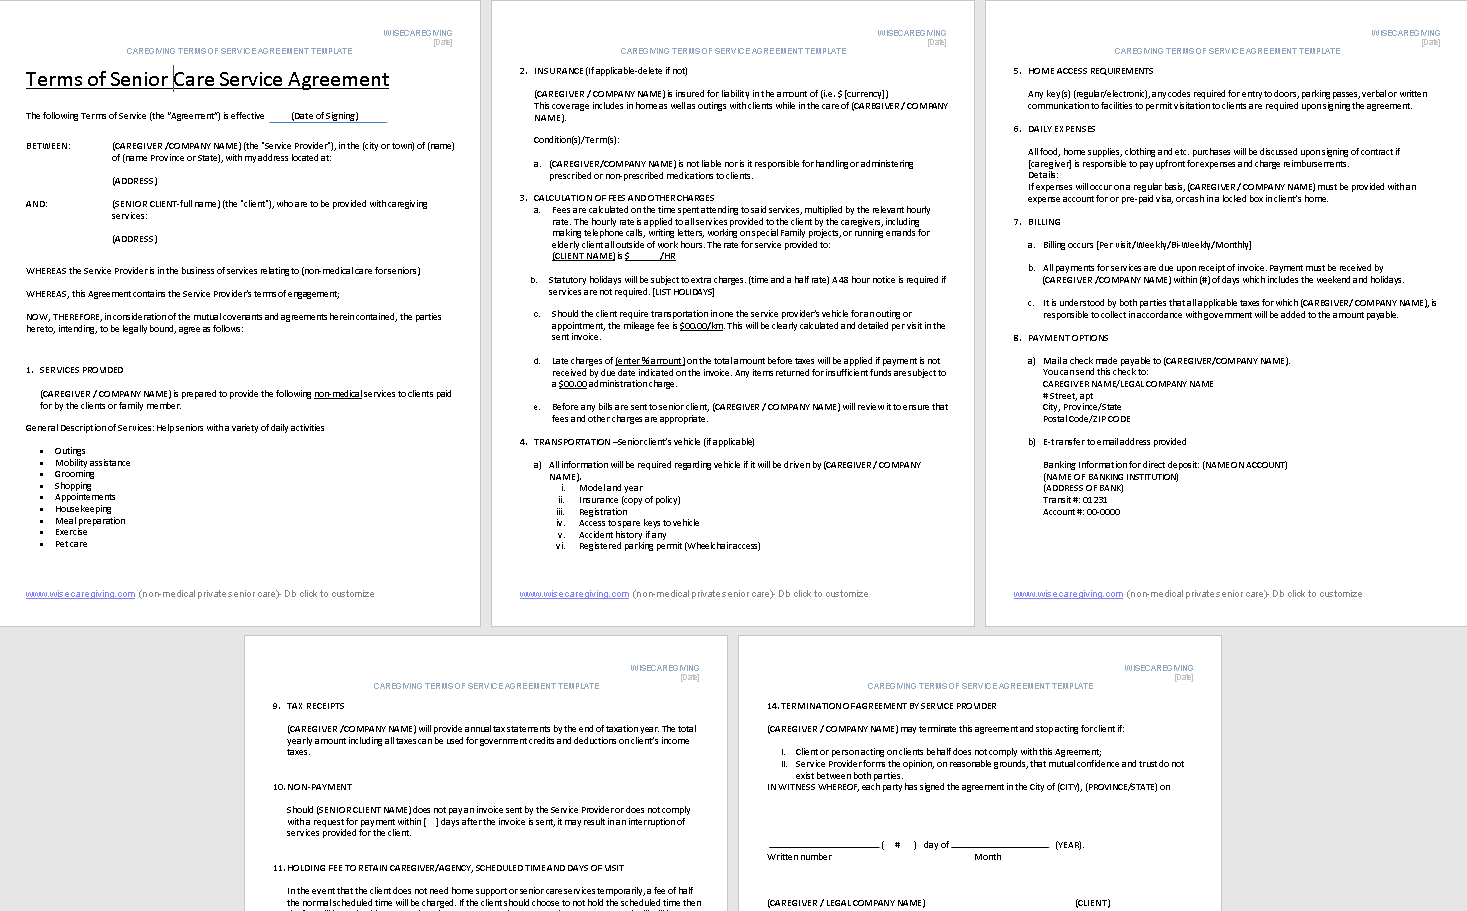 Terms of Senior Care Service Agreement Template-preview-zoom